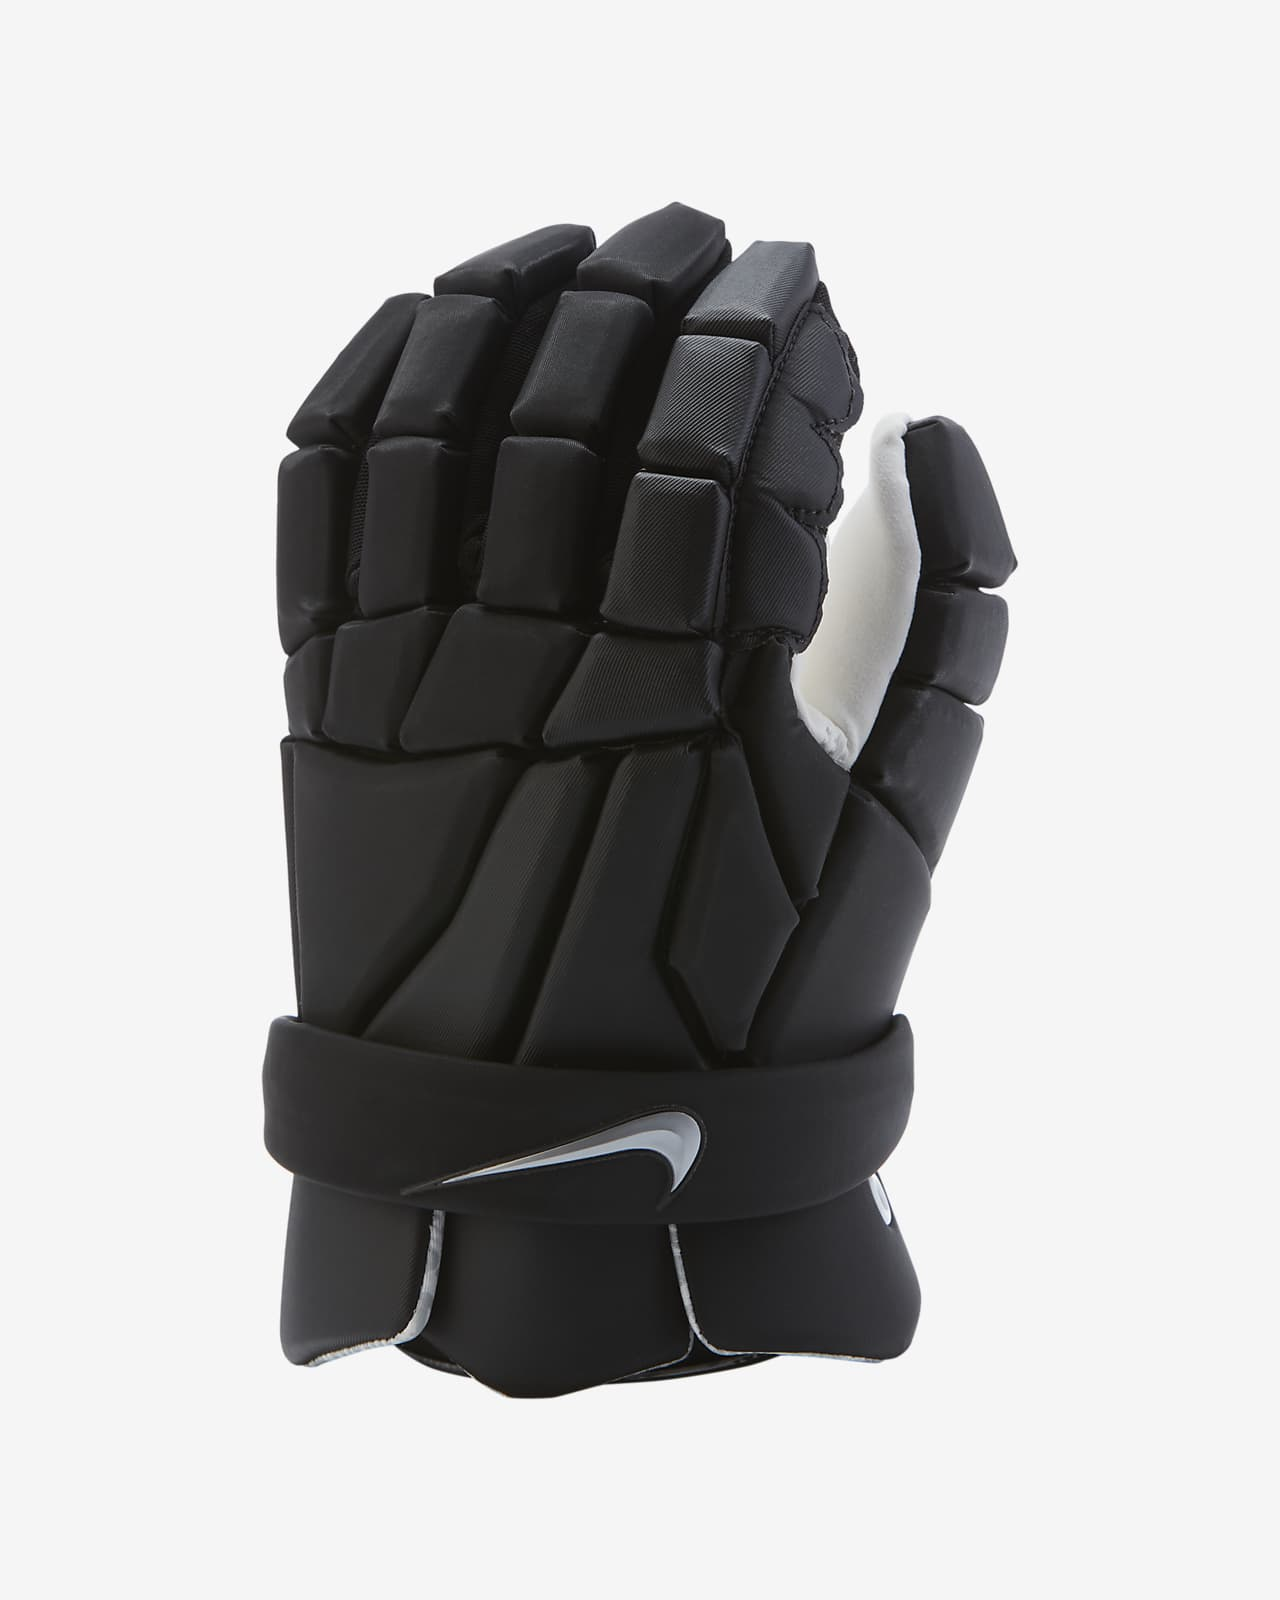 Nike Vapor Pro Men's Lacrosse Gloves